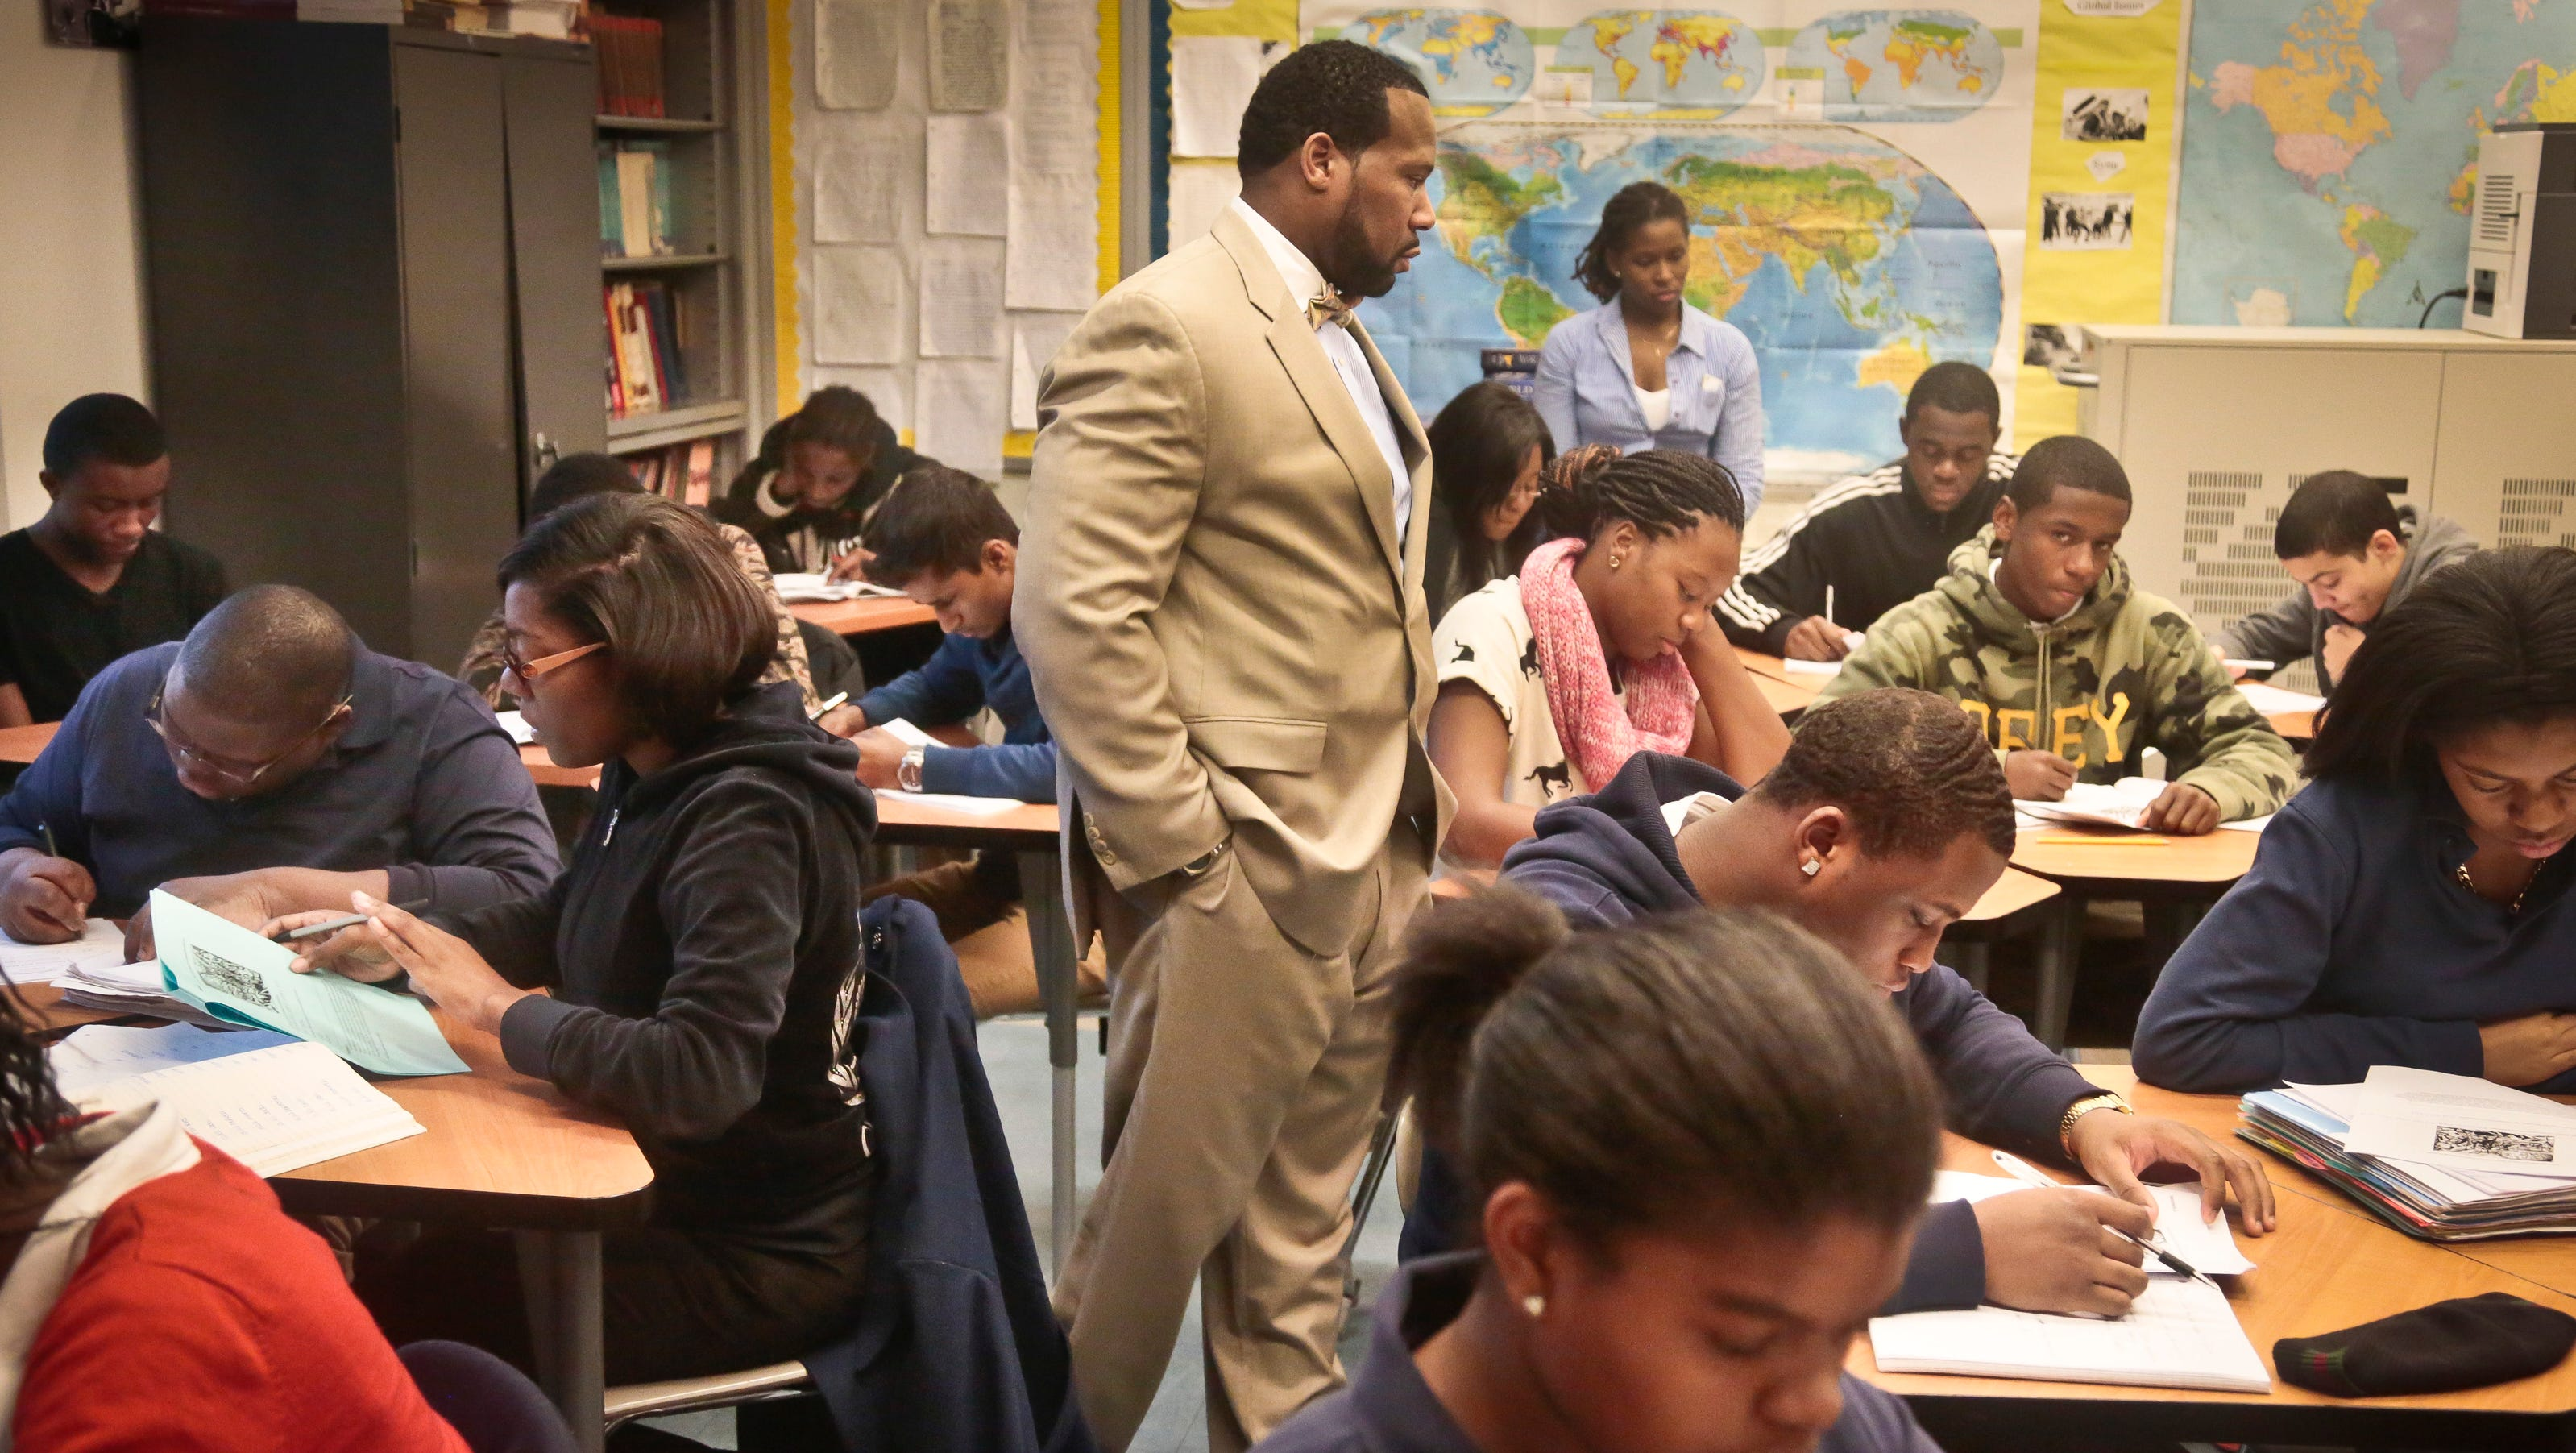 Still apart: Map shows states with most-segregated schools